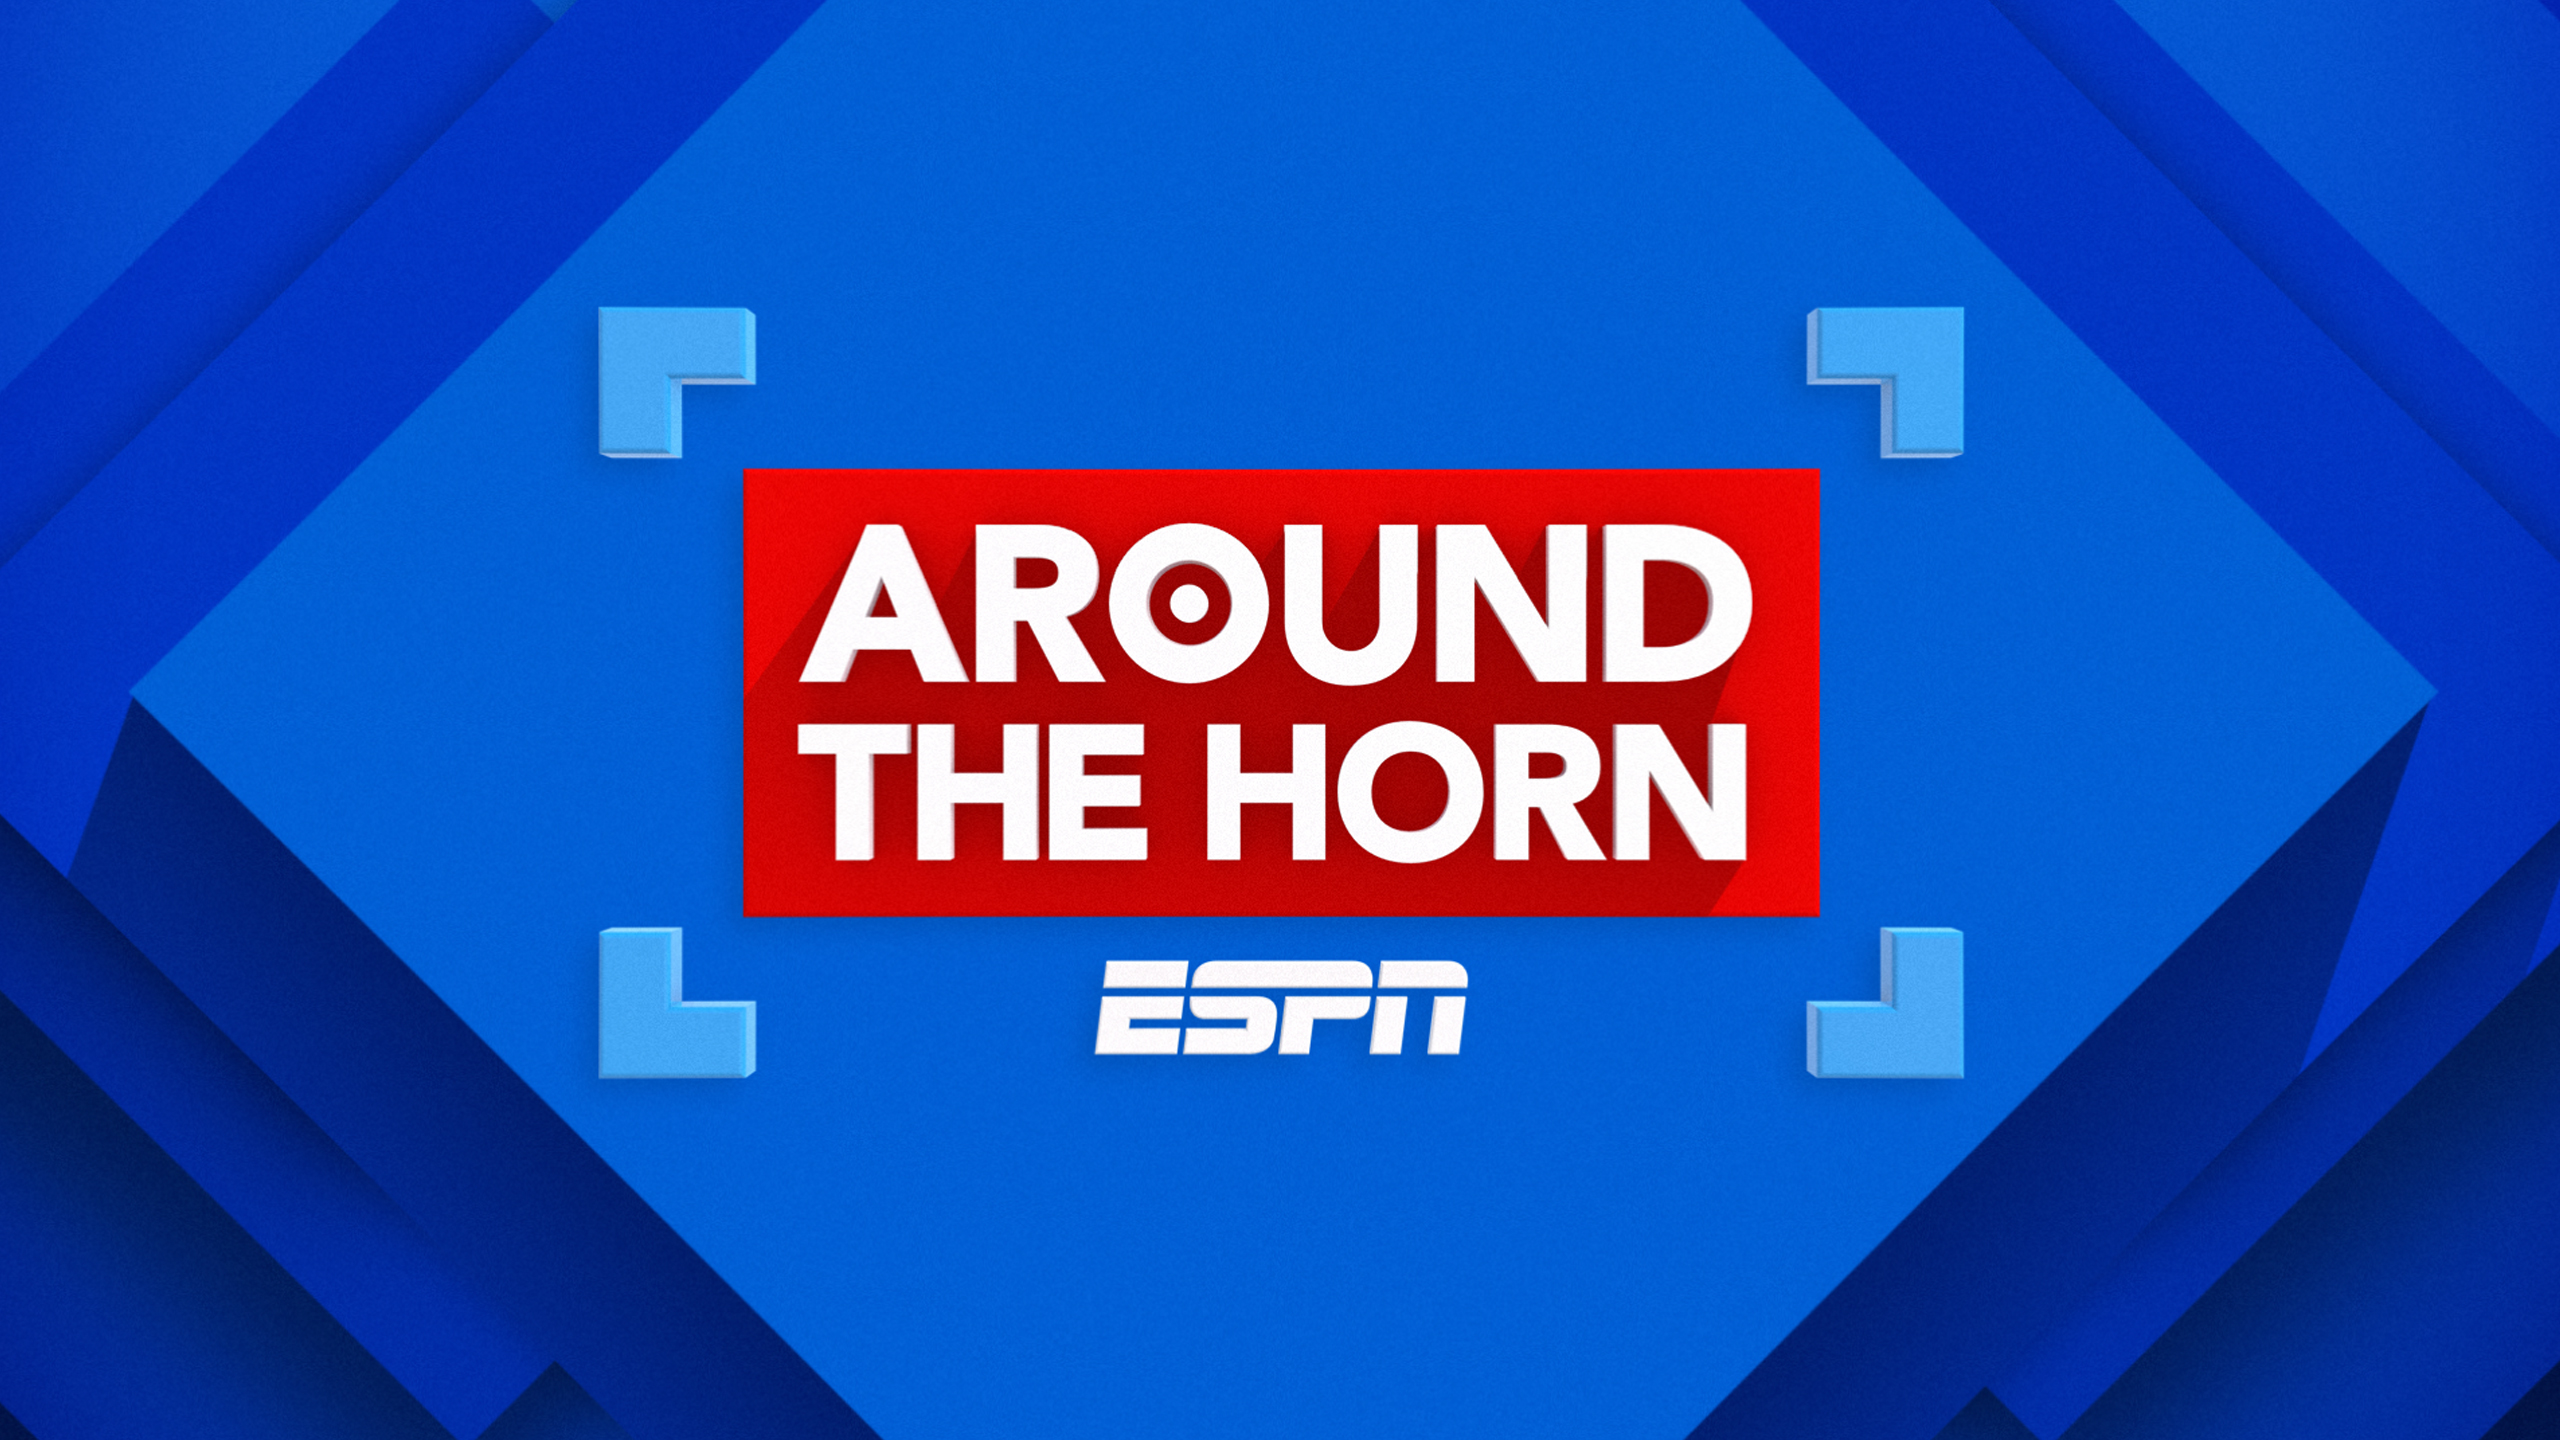 Thu, 9/20 - Around The Horn